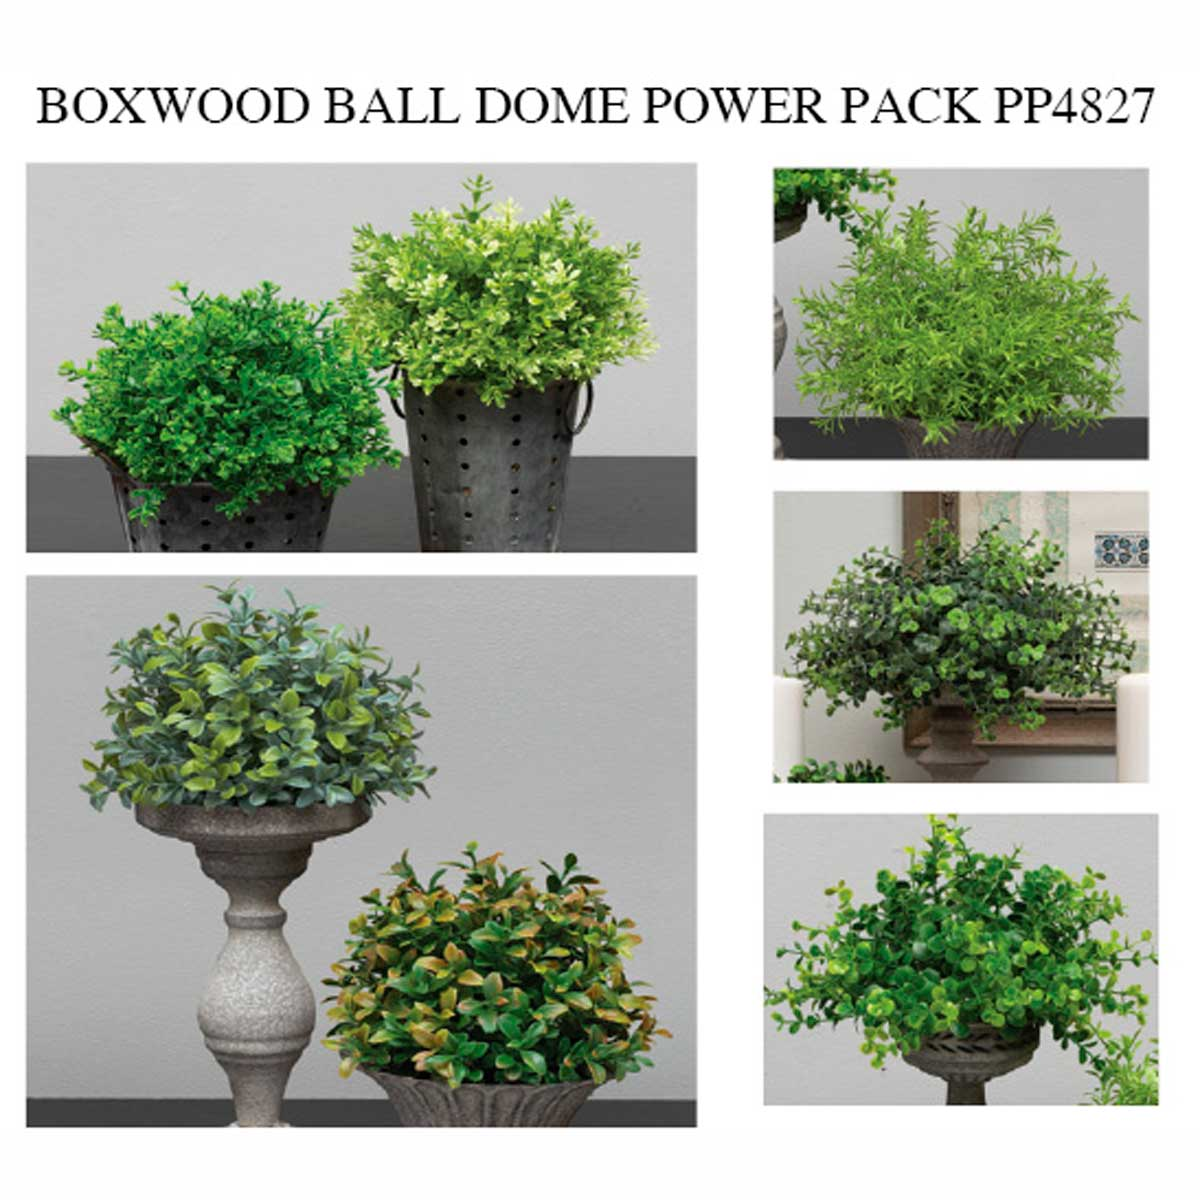 BOXWOOD BALL DOME POWER PACK 30 UNITS